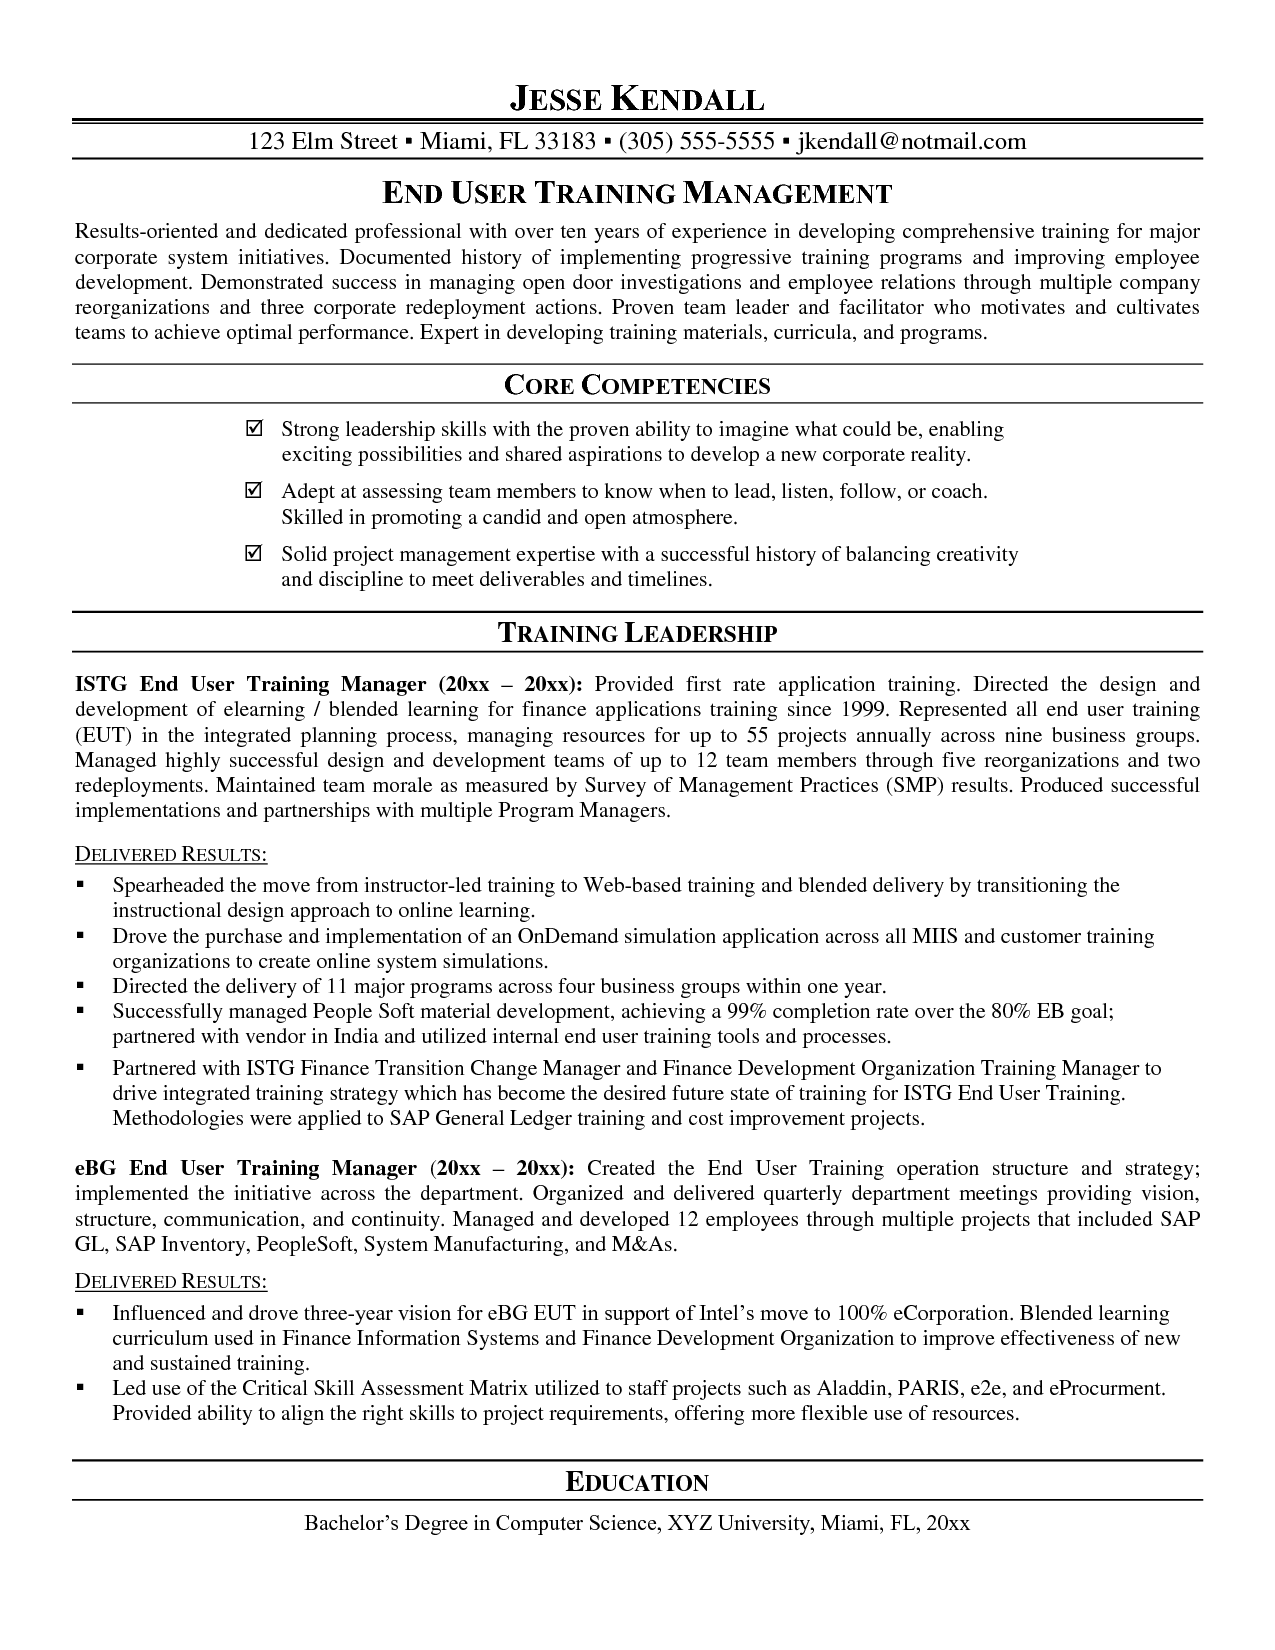 Training manager resume for Training officer job description template